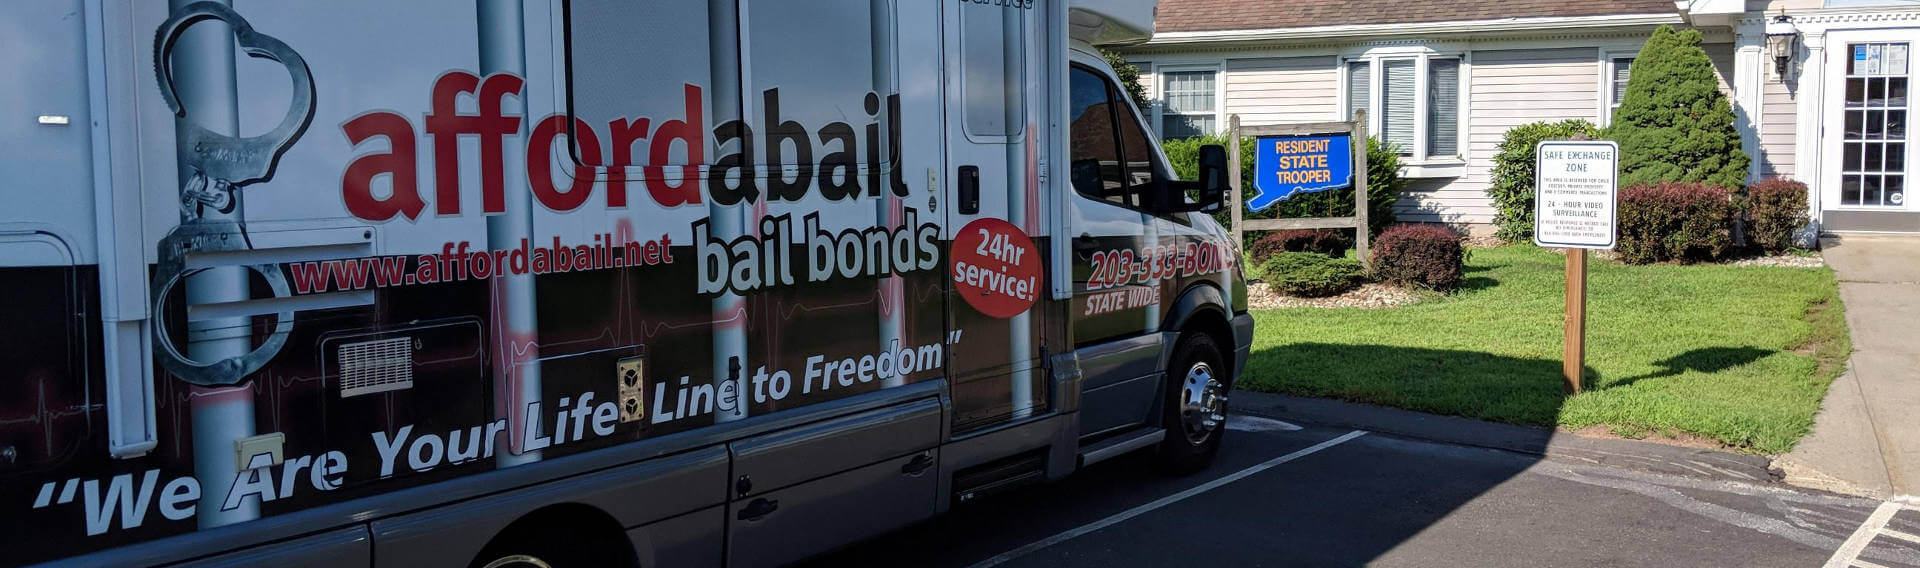 Mobile bail bonds service in Ellington, CT